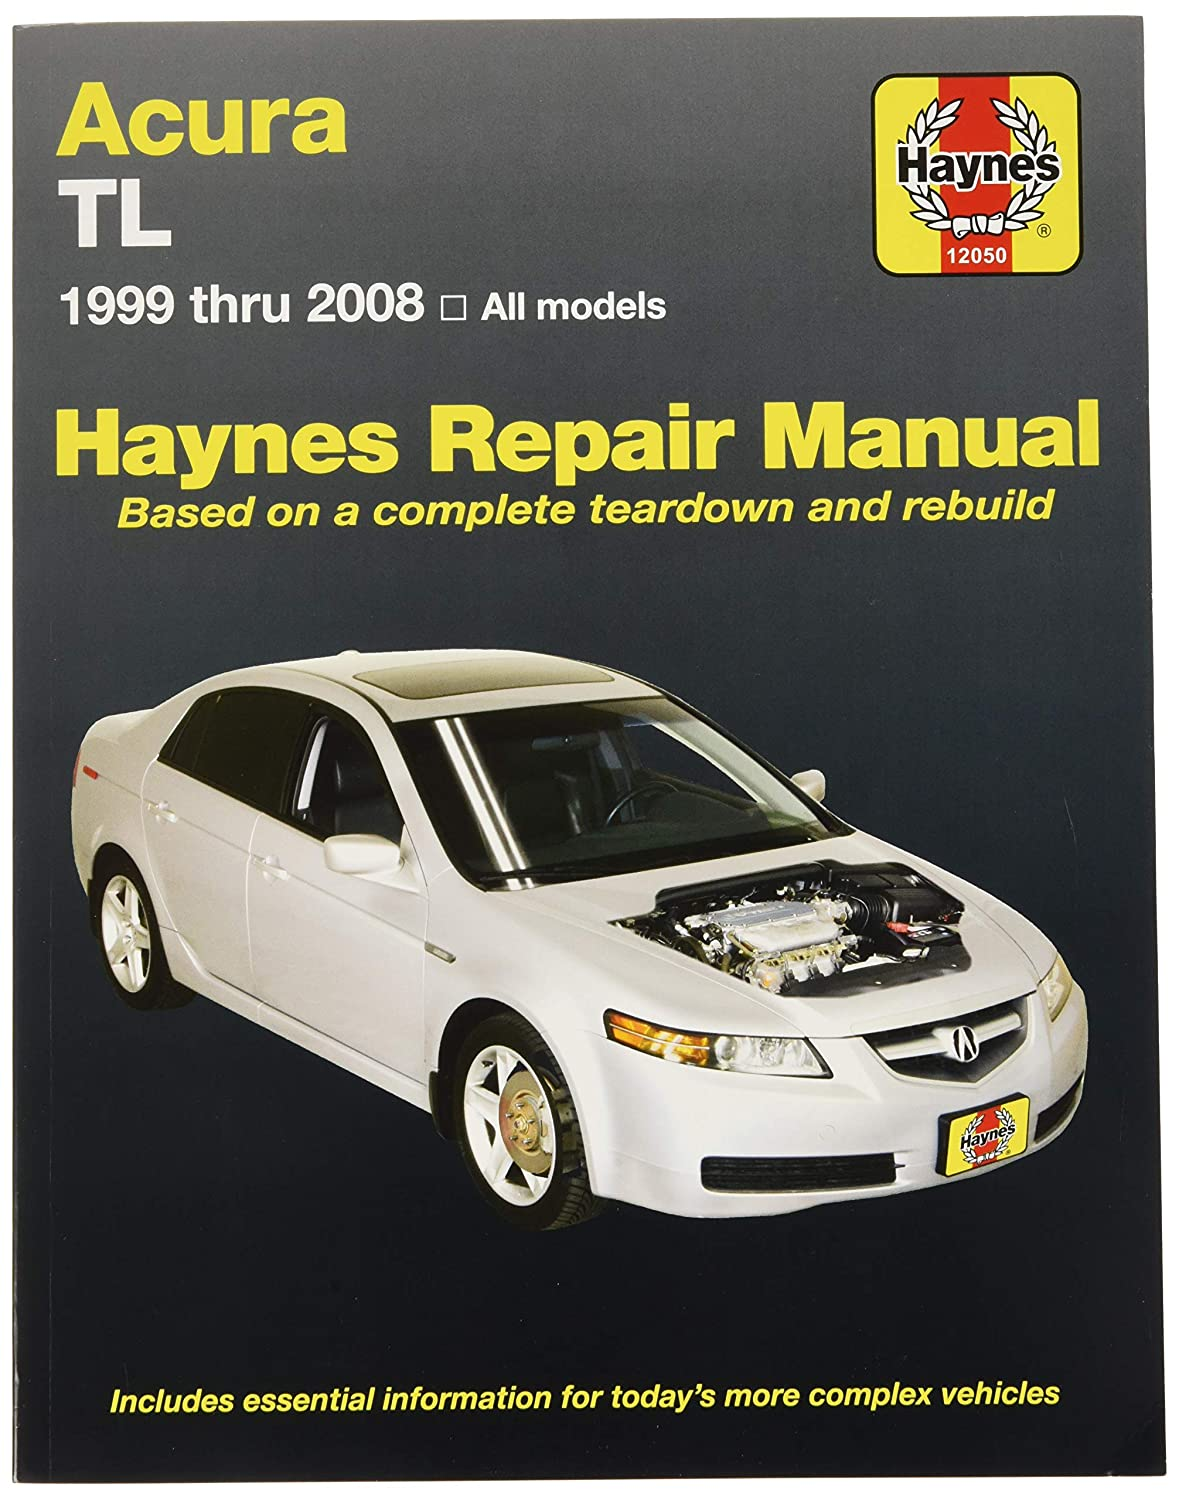 Amazon.com: Haynes Acura TL, 1999 thru 2008 Repair Manual (12050):  Automotive